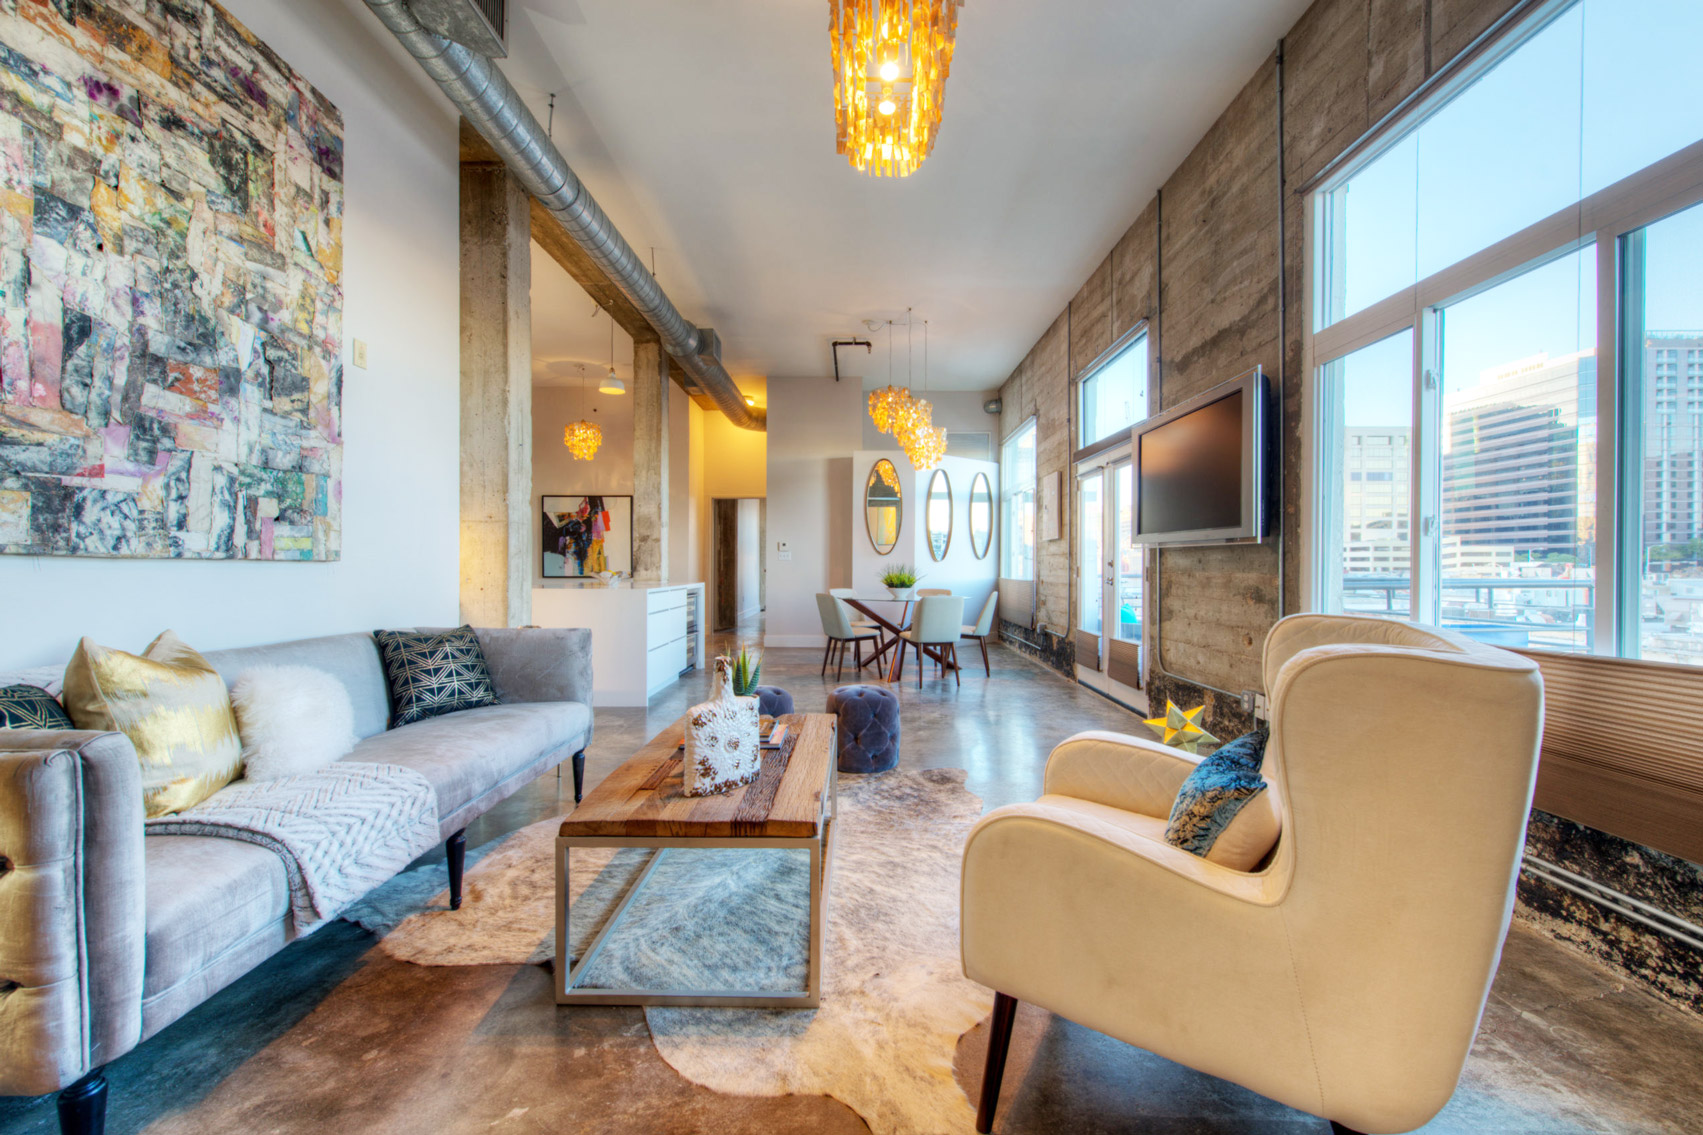 Elite austin interior design texas eclectic loft living for Elite interior designs